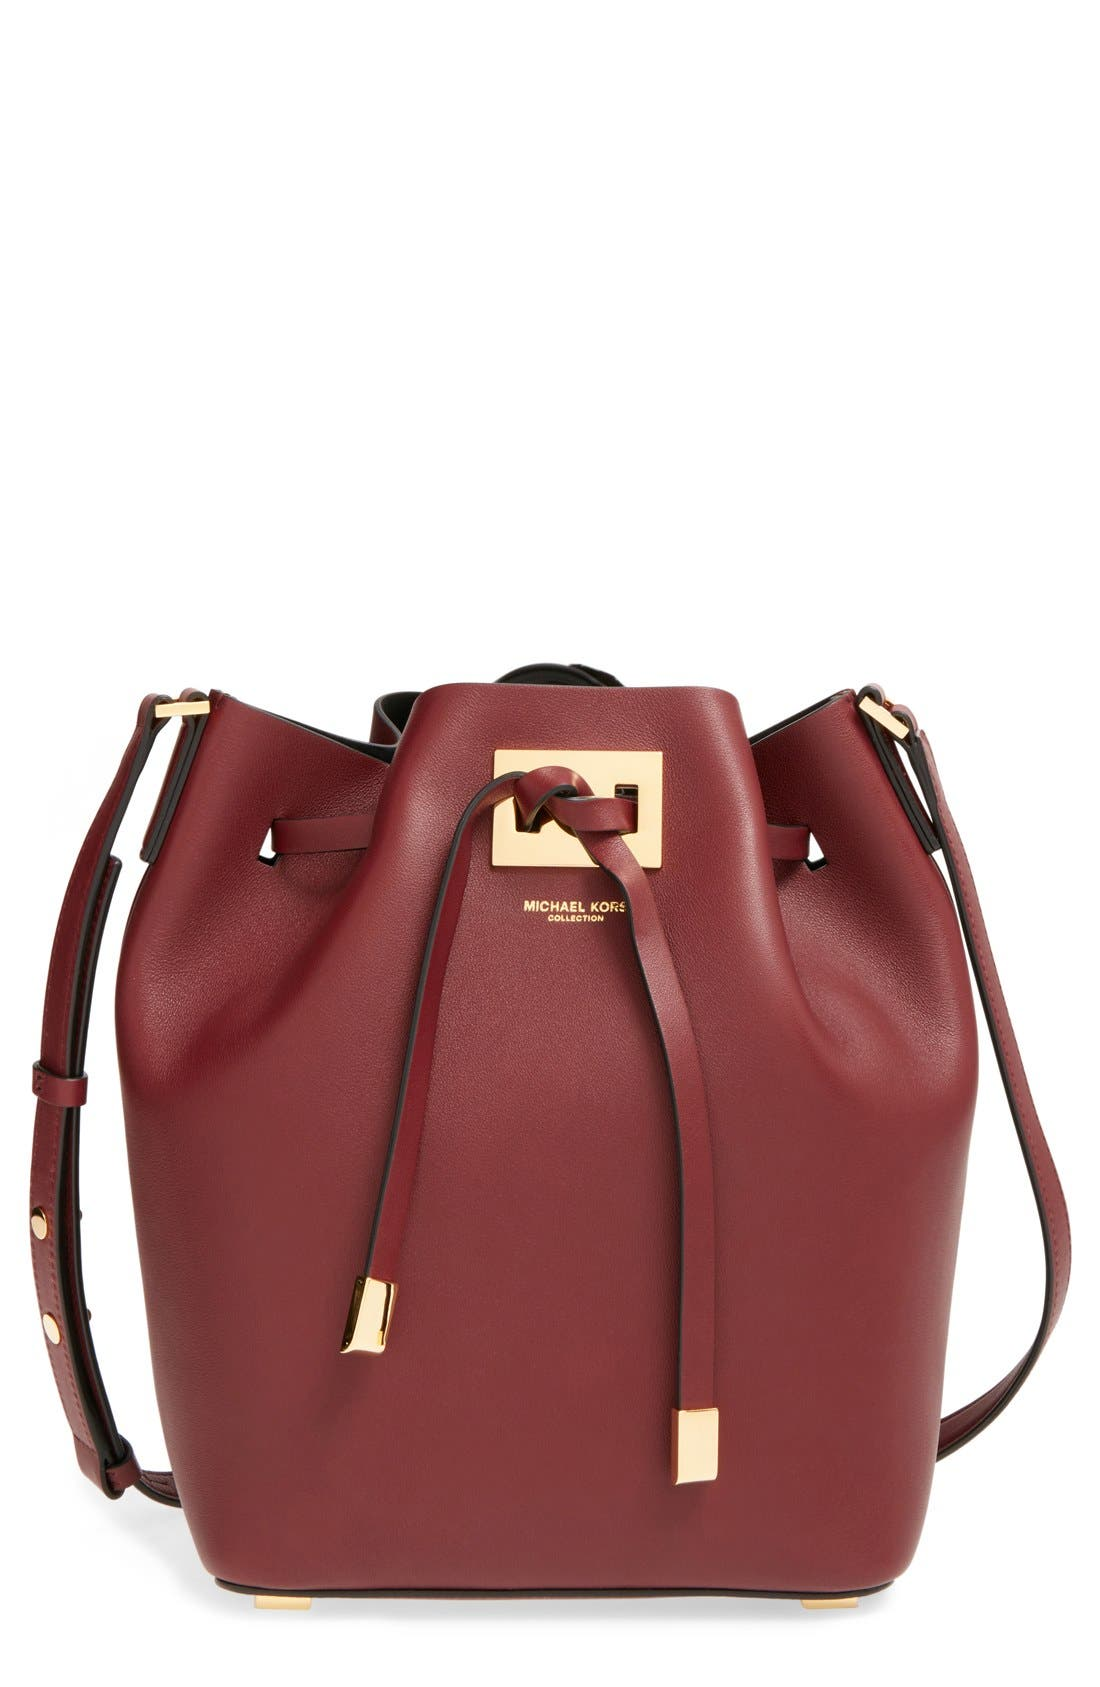 Alternate Image 1 Selected - Michael Kors 'Medium Miranda' Bucket Bag